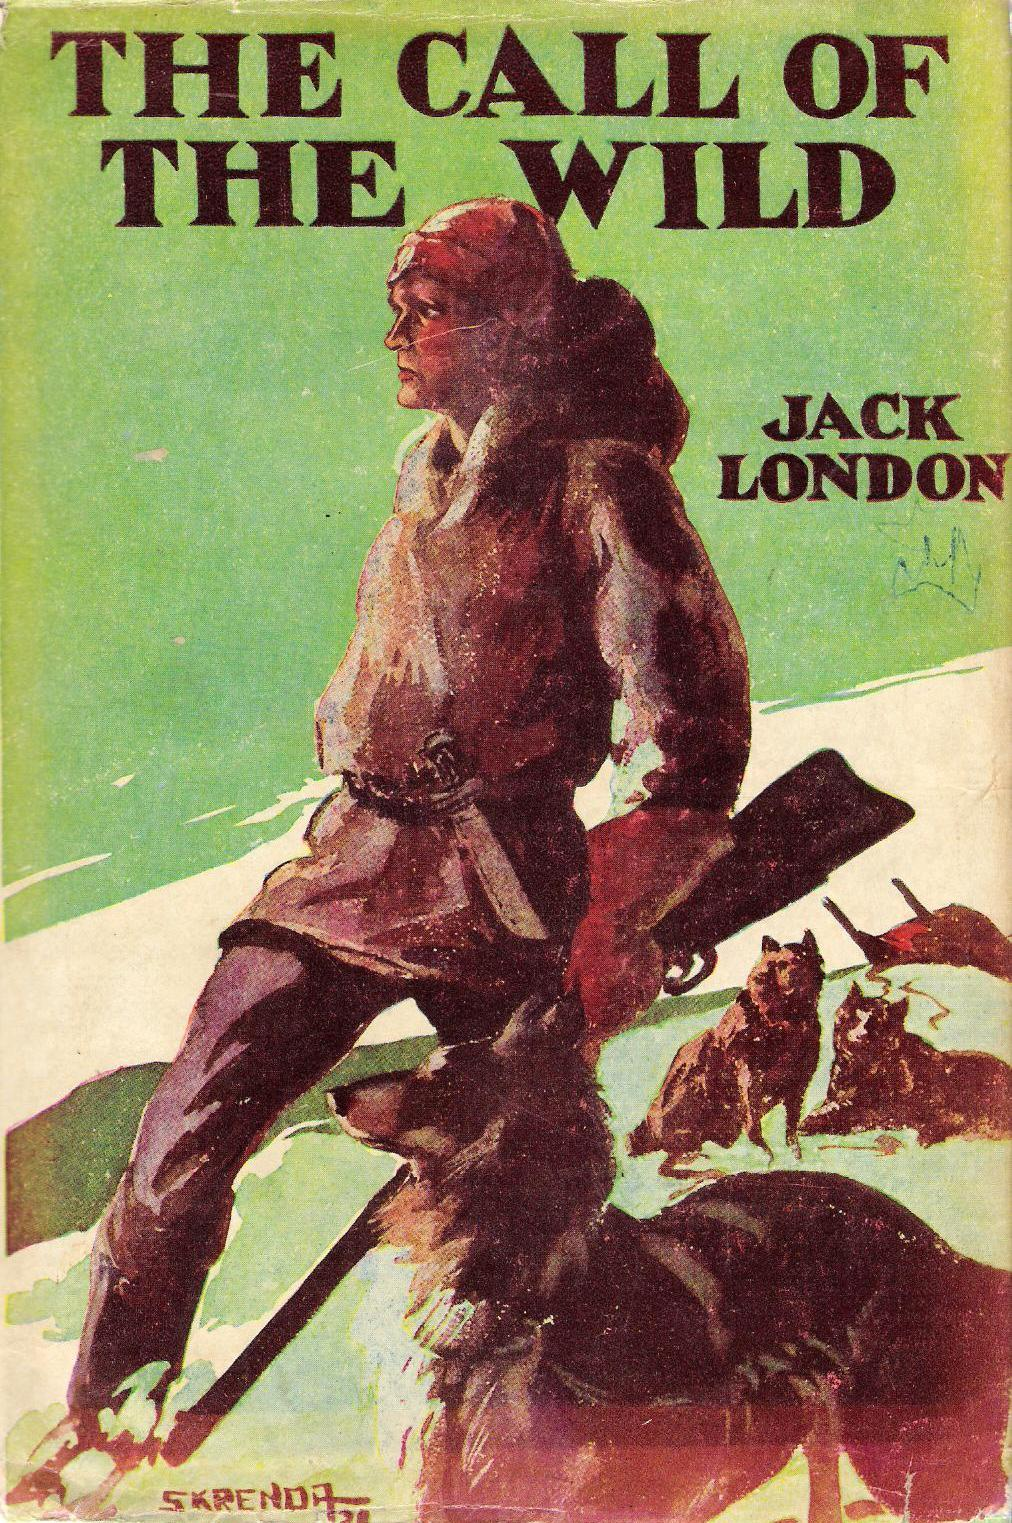 a review of call of the wild by jack london About the call of the wild, white fang & to build a fire the call of the wild—selected by the modern library as one of the 100 best novels of all time 'to this day jack london is the most widely read american writer in the world,' e l doctorow wrote in the new york times book review.